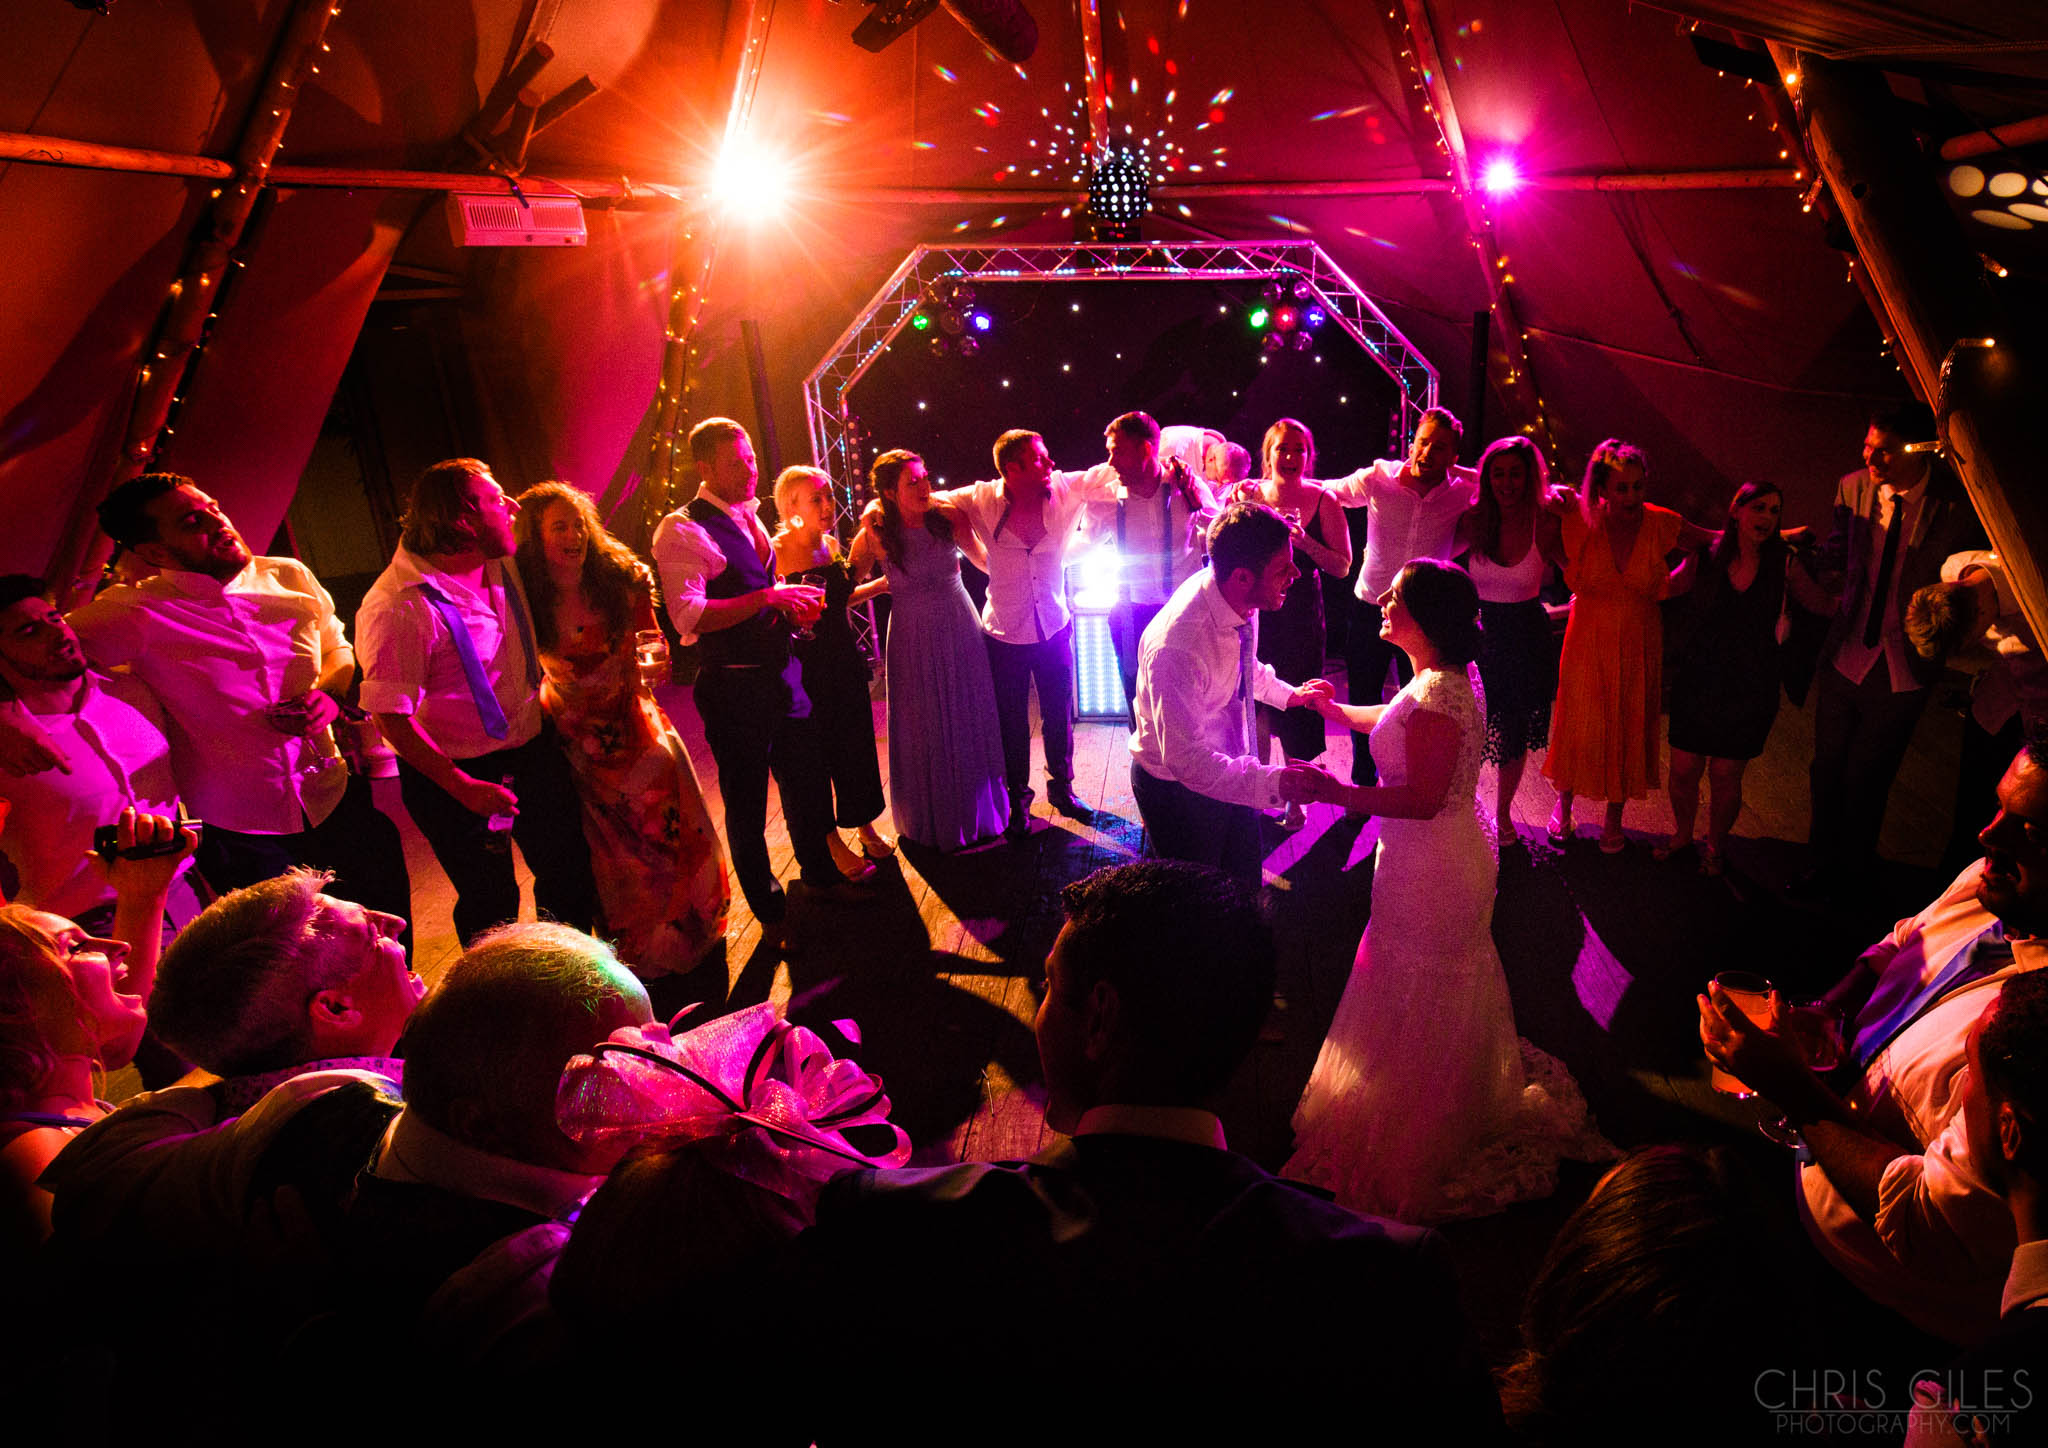 The Dancfloor inside the Tipi at Woodhill Hall